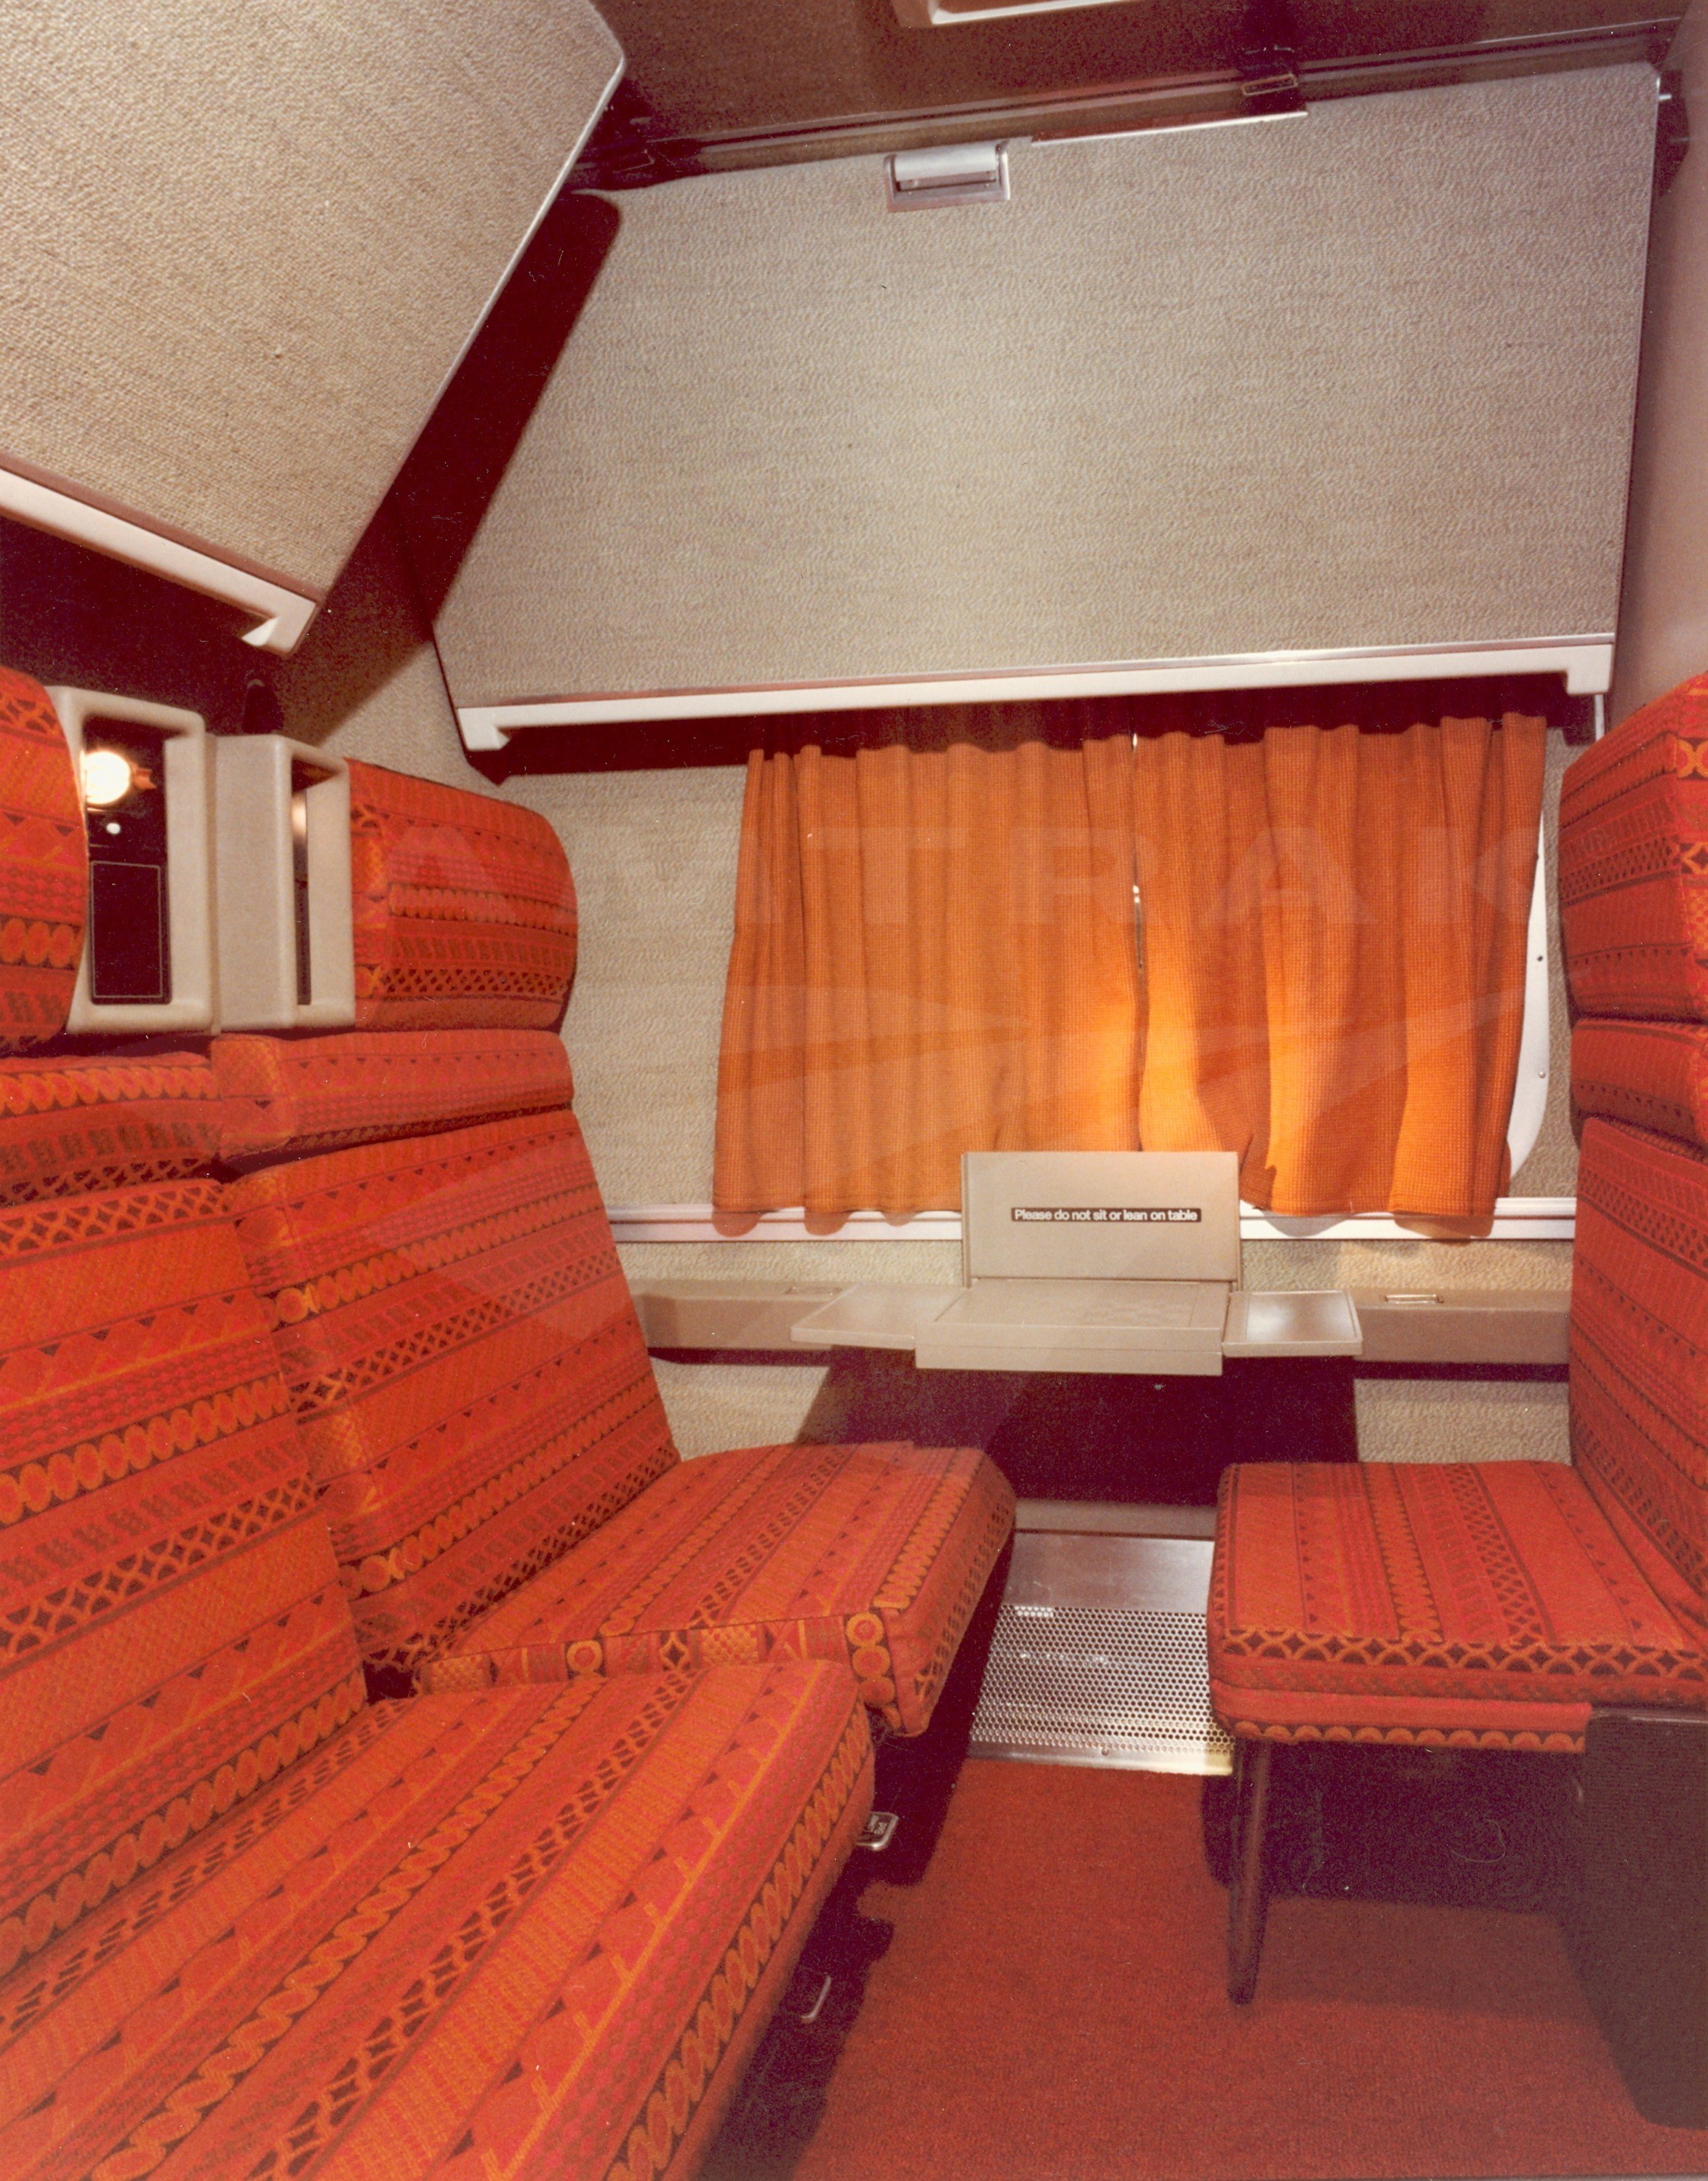 Best Superliner I Family Bedroom 1980S — Amtrak History Of With Pictures